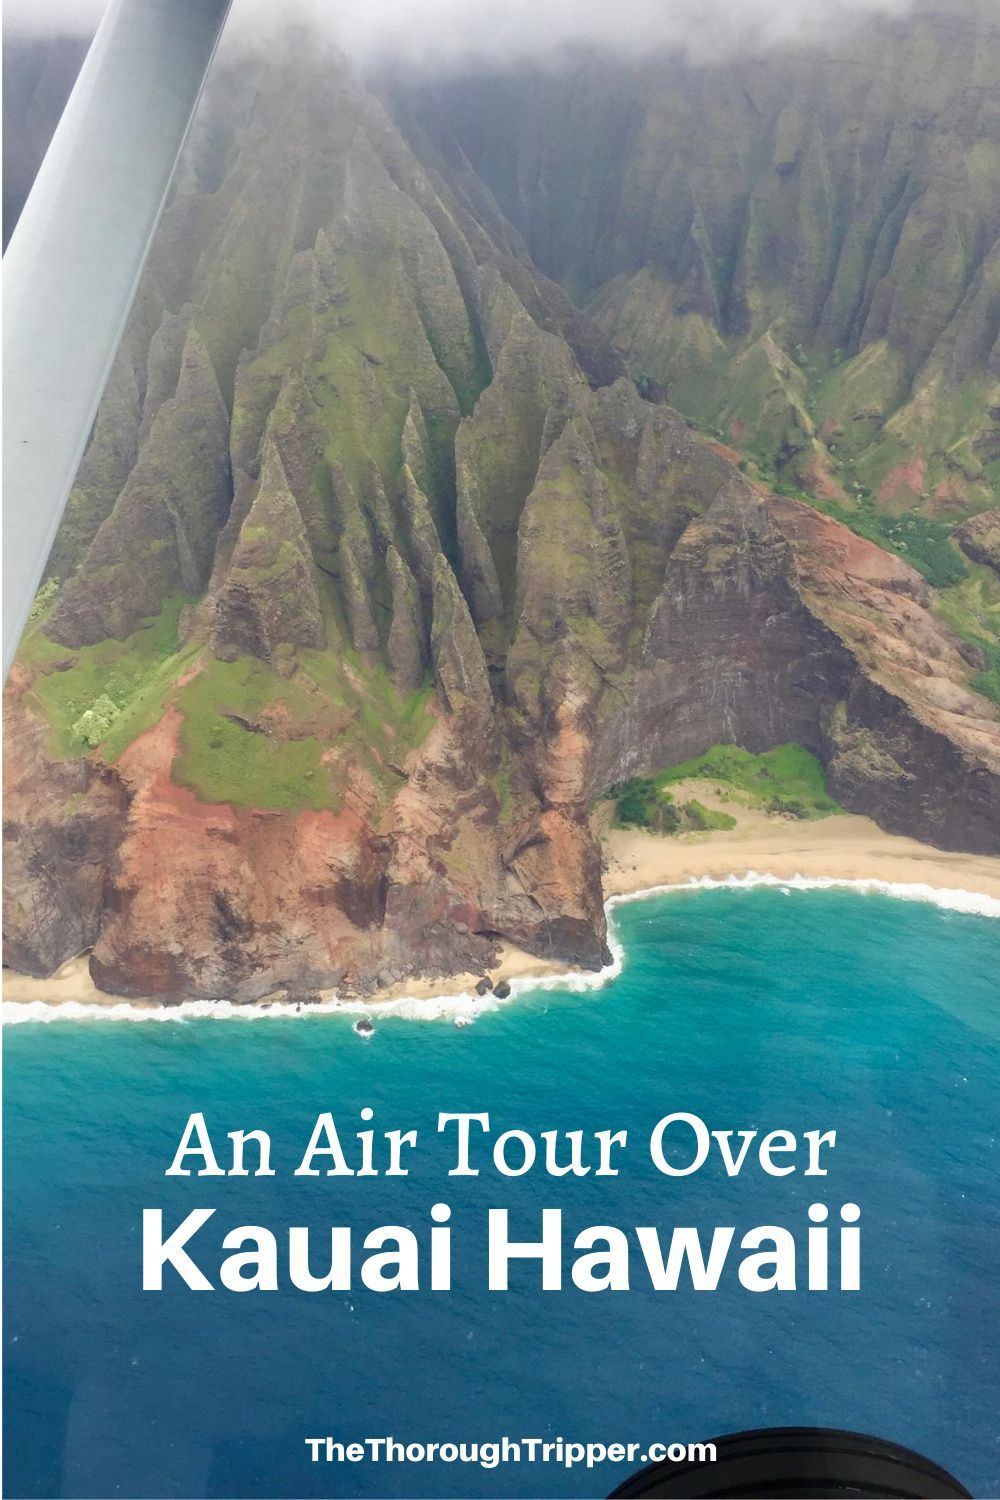 An Air Tour is a great way to see everything that the island of Kauai Hawaii has to offer including Waimea Canyon and the NaPali Coast.  I personally have a great fear of flying especially in a small Cessna plane, but the company Wings Over Kauai helped make it a great experience.  I'm glad my small plane phobia didn't stop me from taking this Kauai Hawaii Air Tour. #Kauai #Hawaii #NapaliCoast #WaimeaCanyon #AirTour